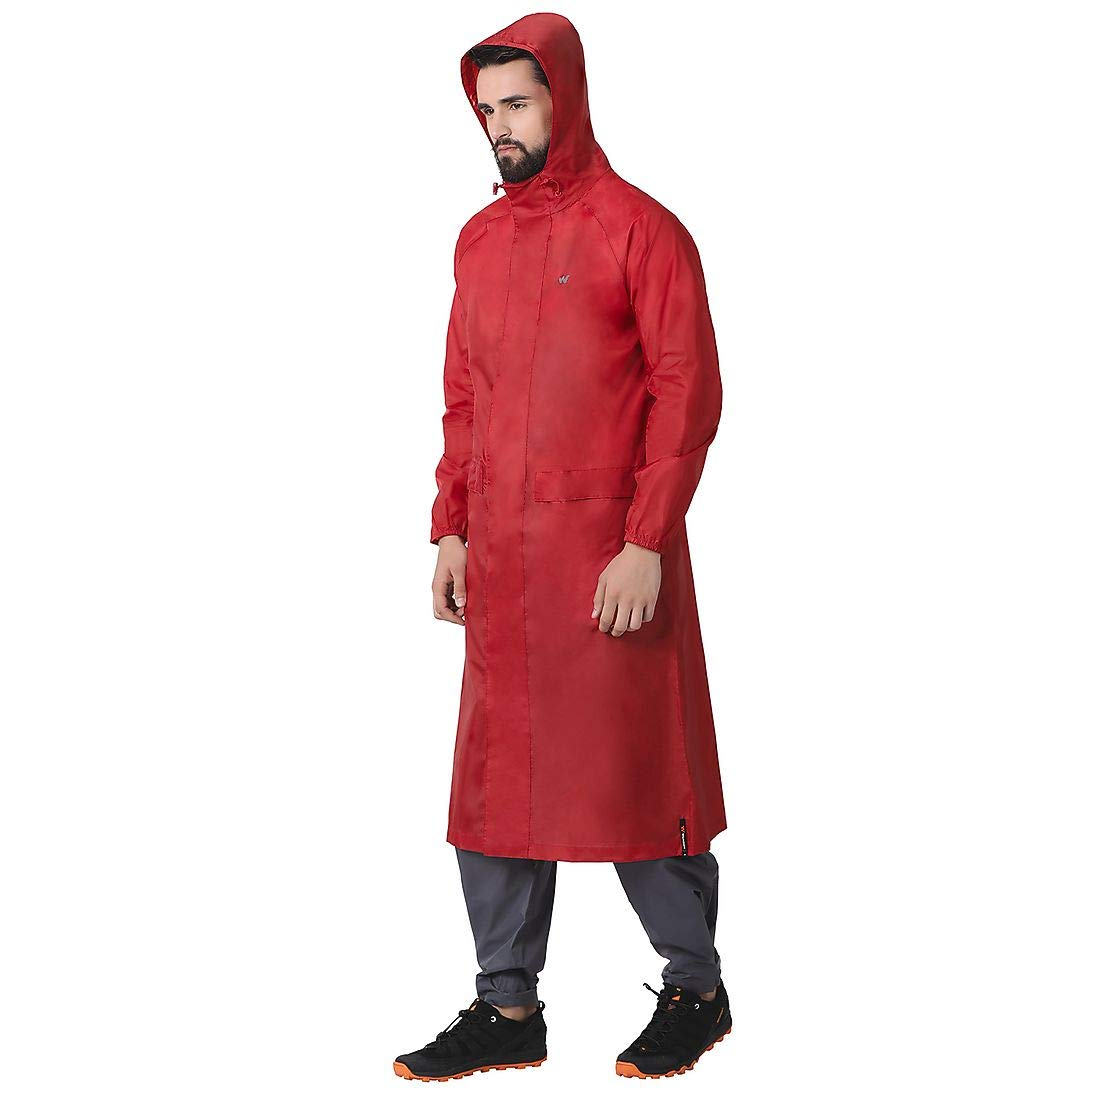 Best Raincoats to Buy in India